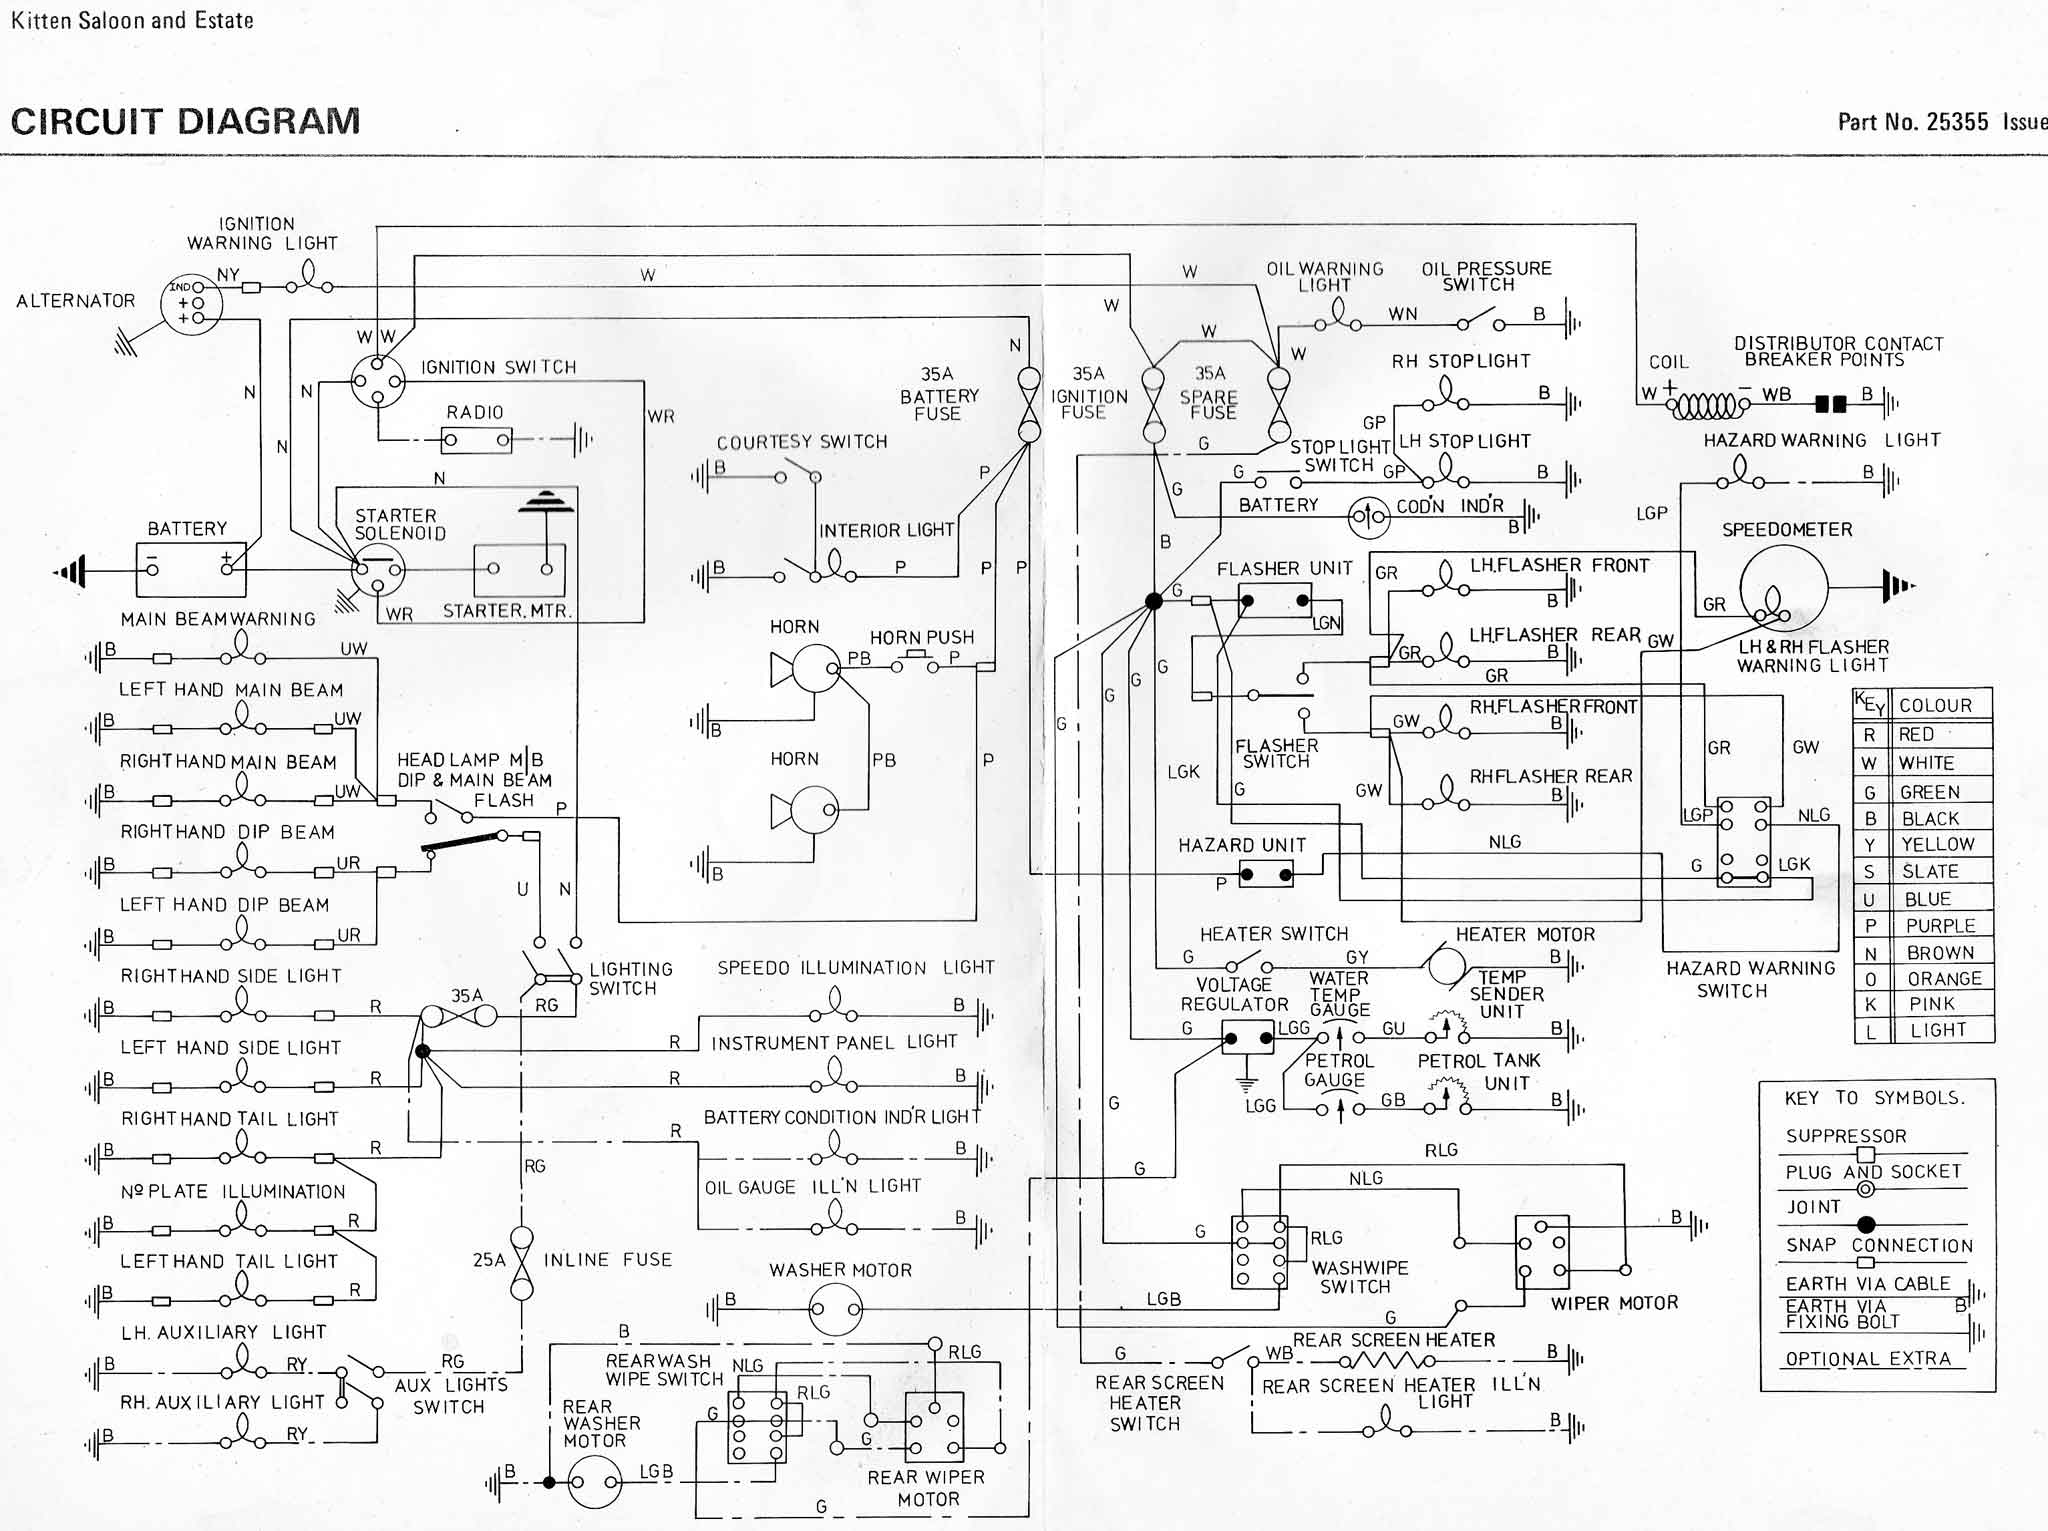 estate wiring diagram diagram data schemaestate wiring diagram wiring diagram document guide estate dryer wiring diagram estate wiring diagram